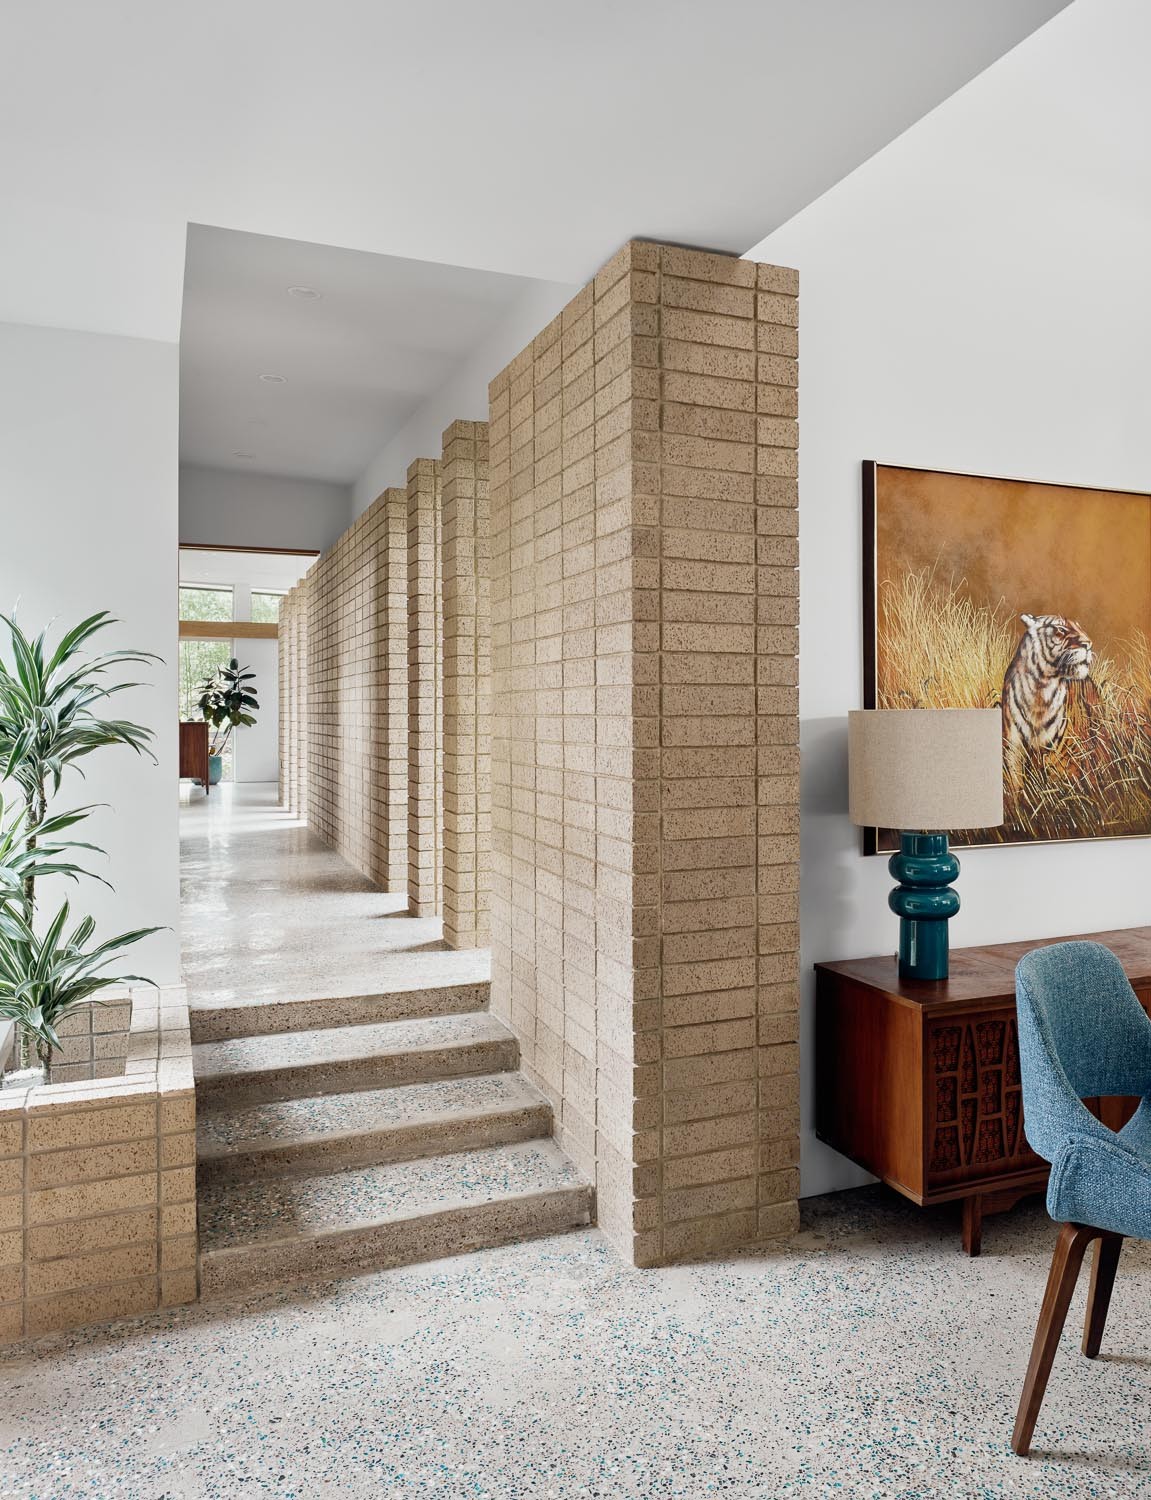 Throughout this mid-century modern inspired home, 1800 pounds (816kg) of various colored glass was hand spread into the concrete floor as it was setting up, making a one-of-a-kind unique floor.